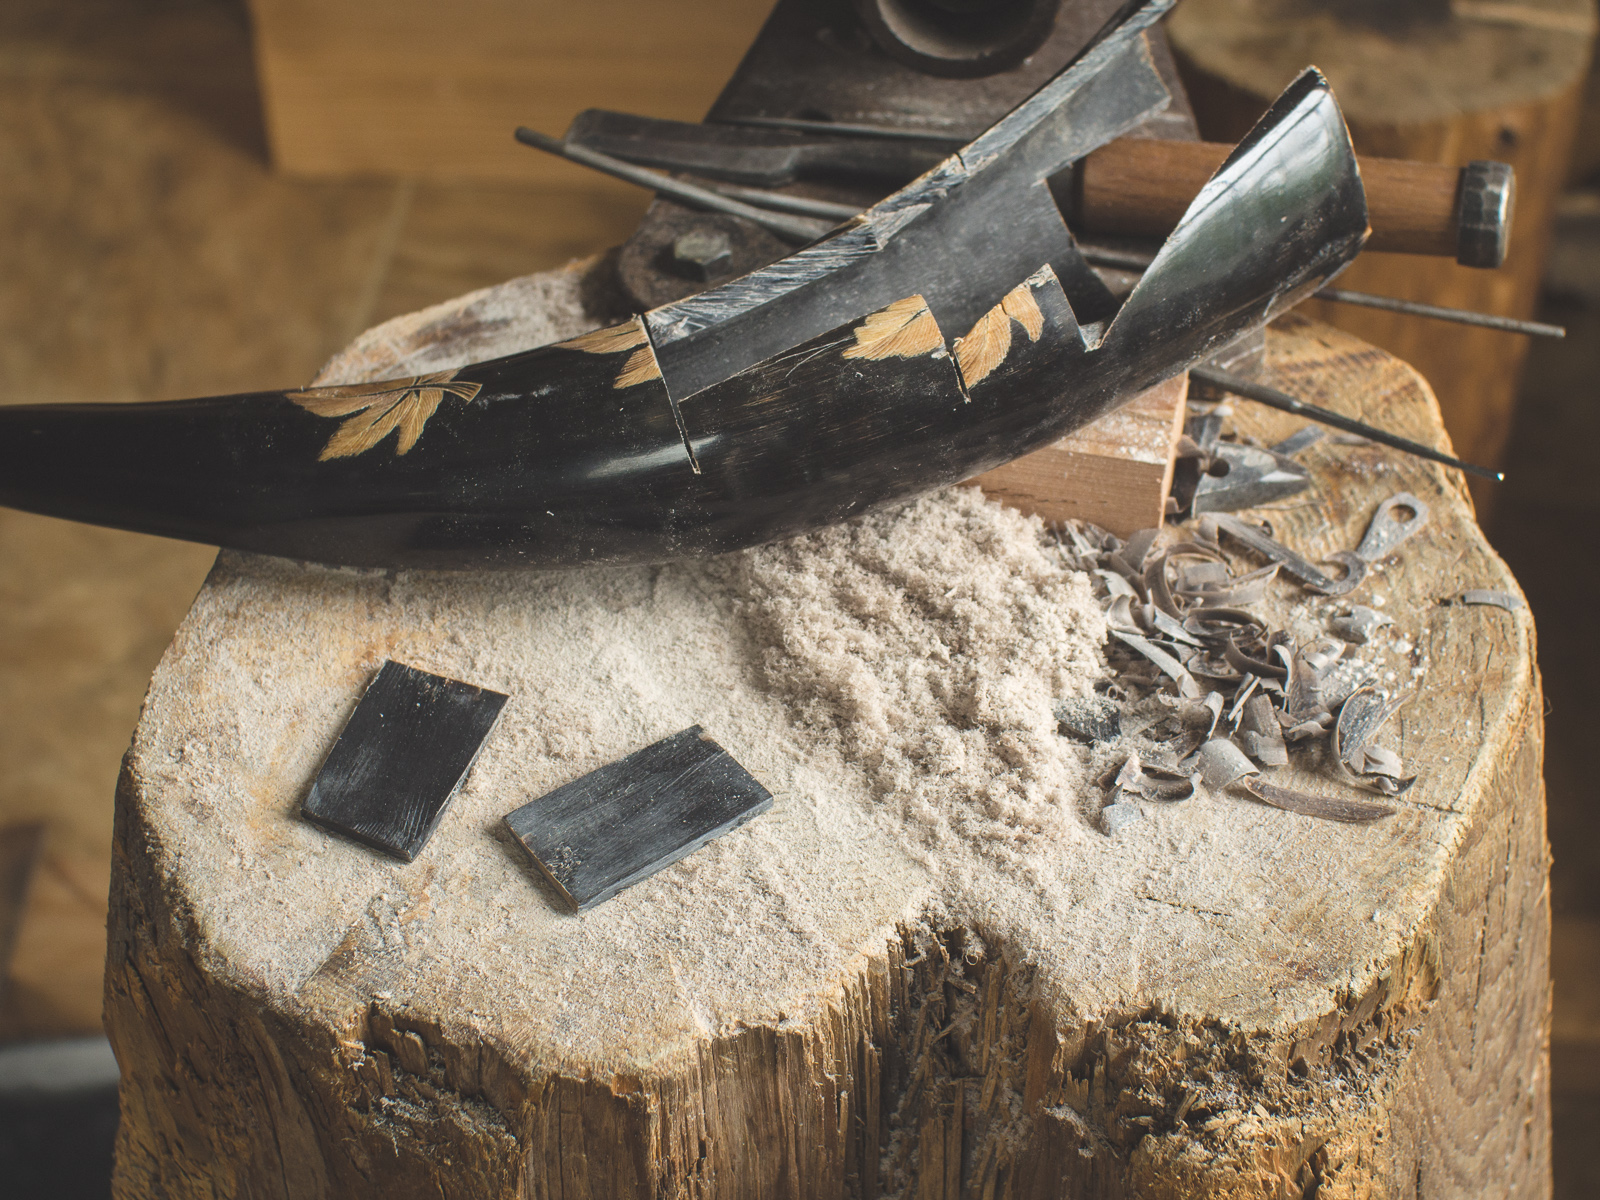 Island Blacksmith: Hand crafted tanto made from reclaimed and natural materials using traditional techniques